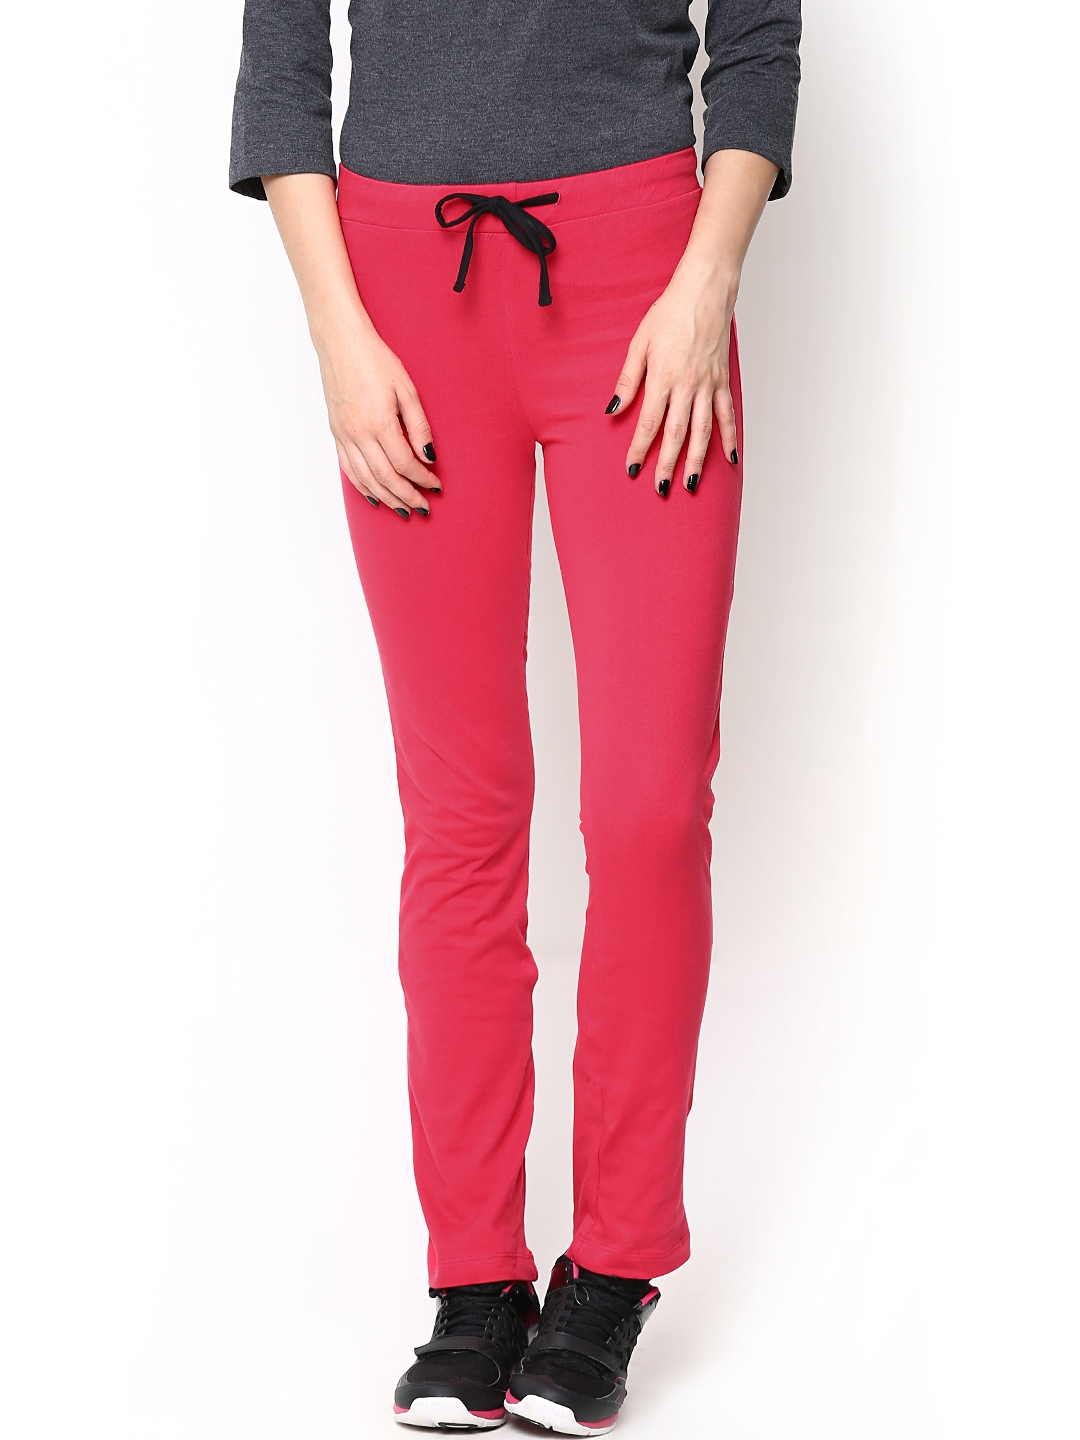 Creative Firebird Track Pants Women S Bottoms From Adidas Find Adidas Fash